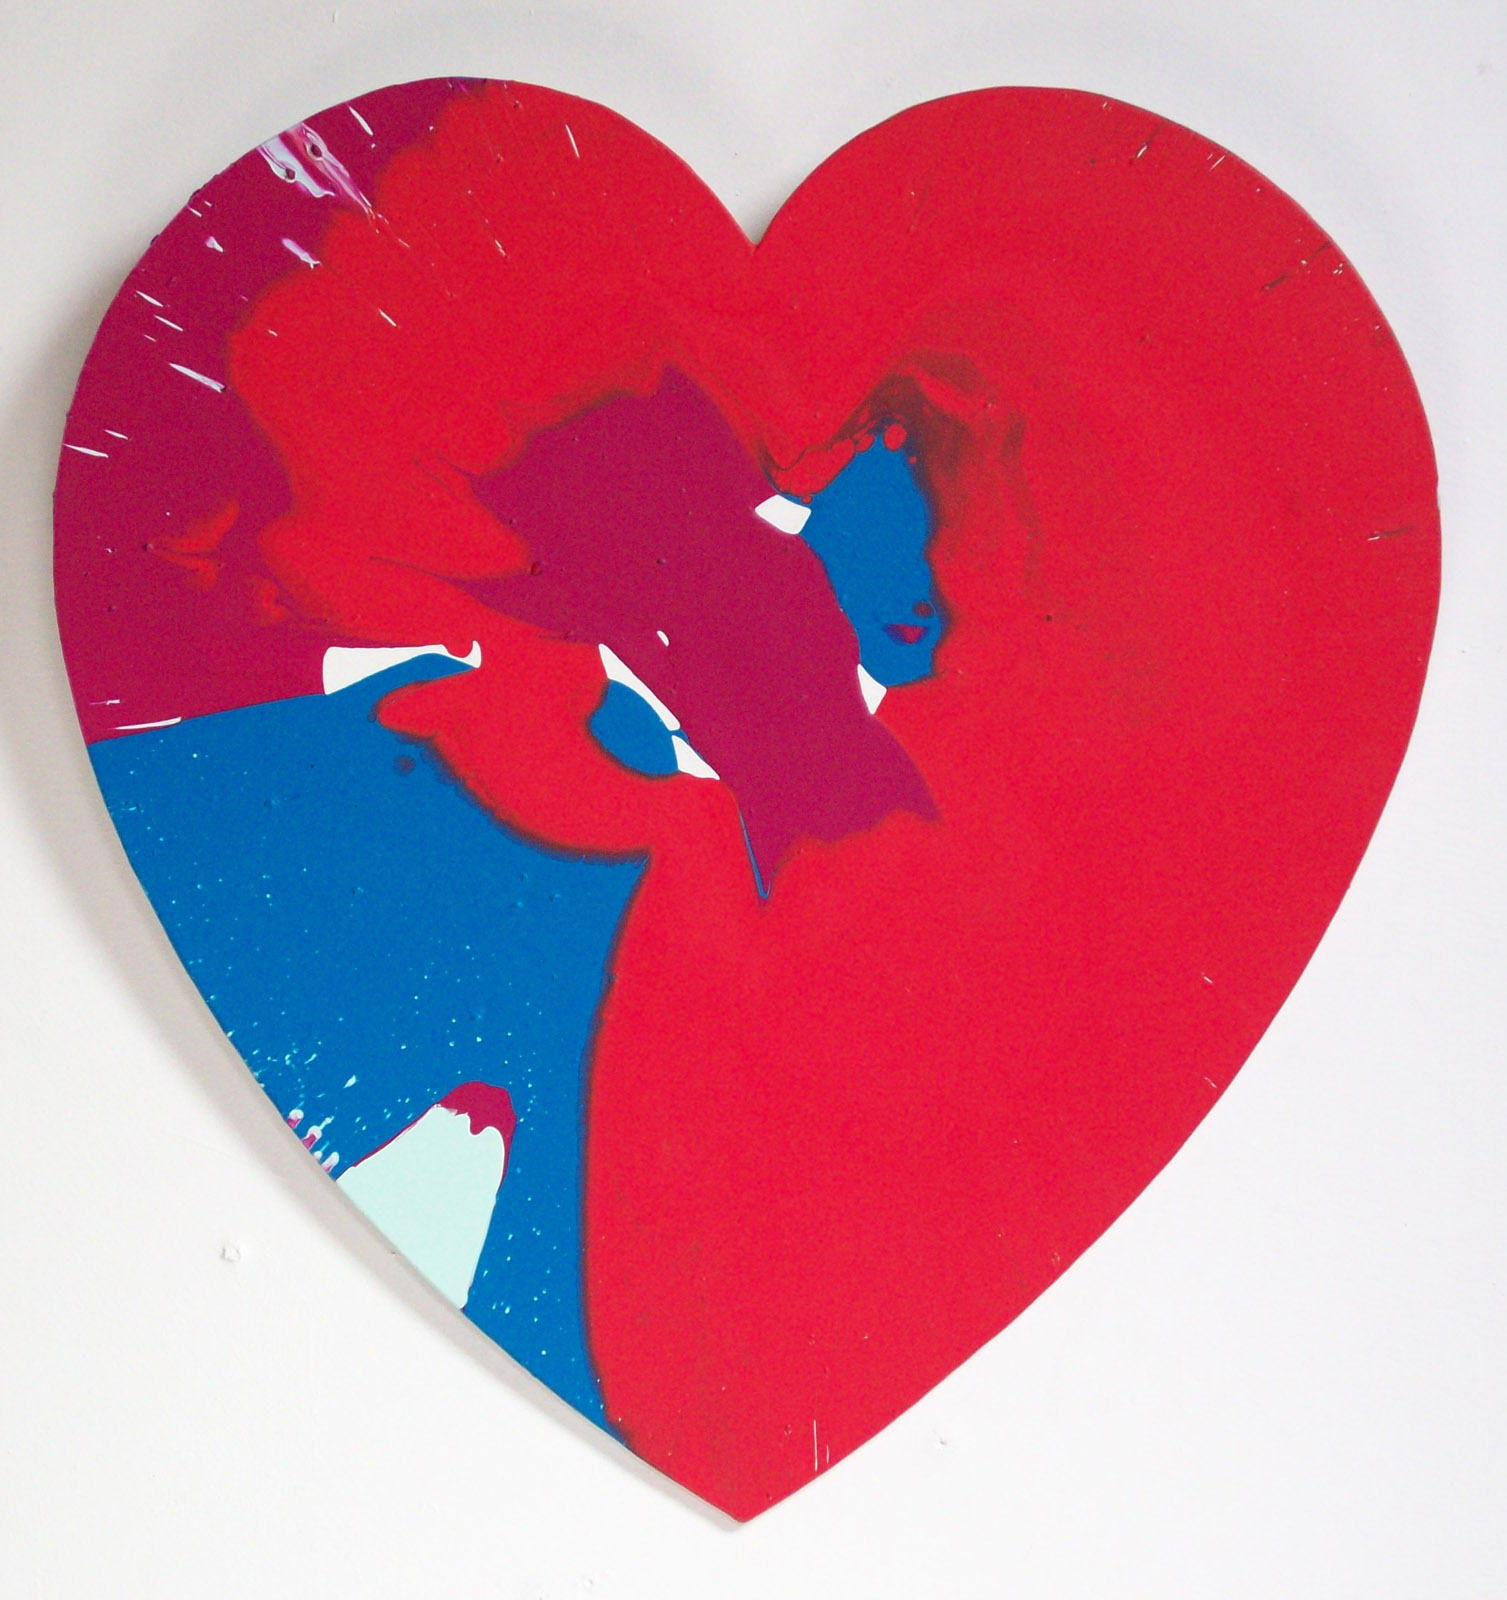 Heart spin painting of color catalogue alan dedman